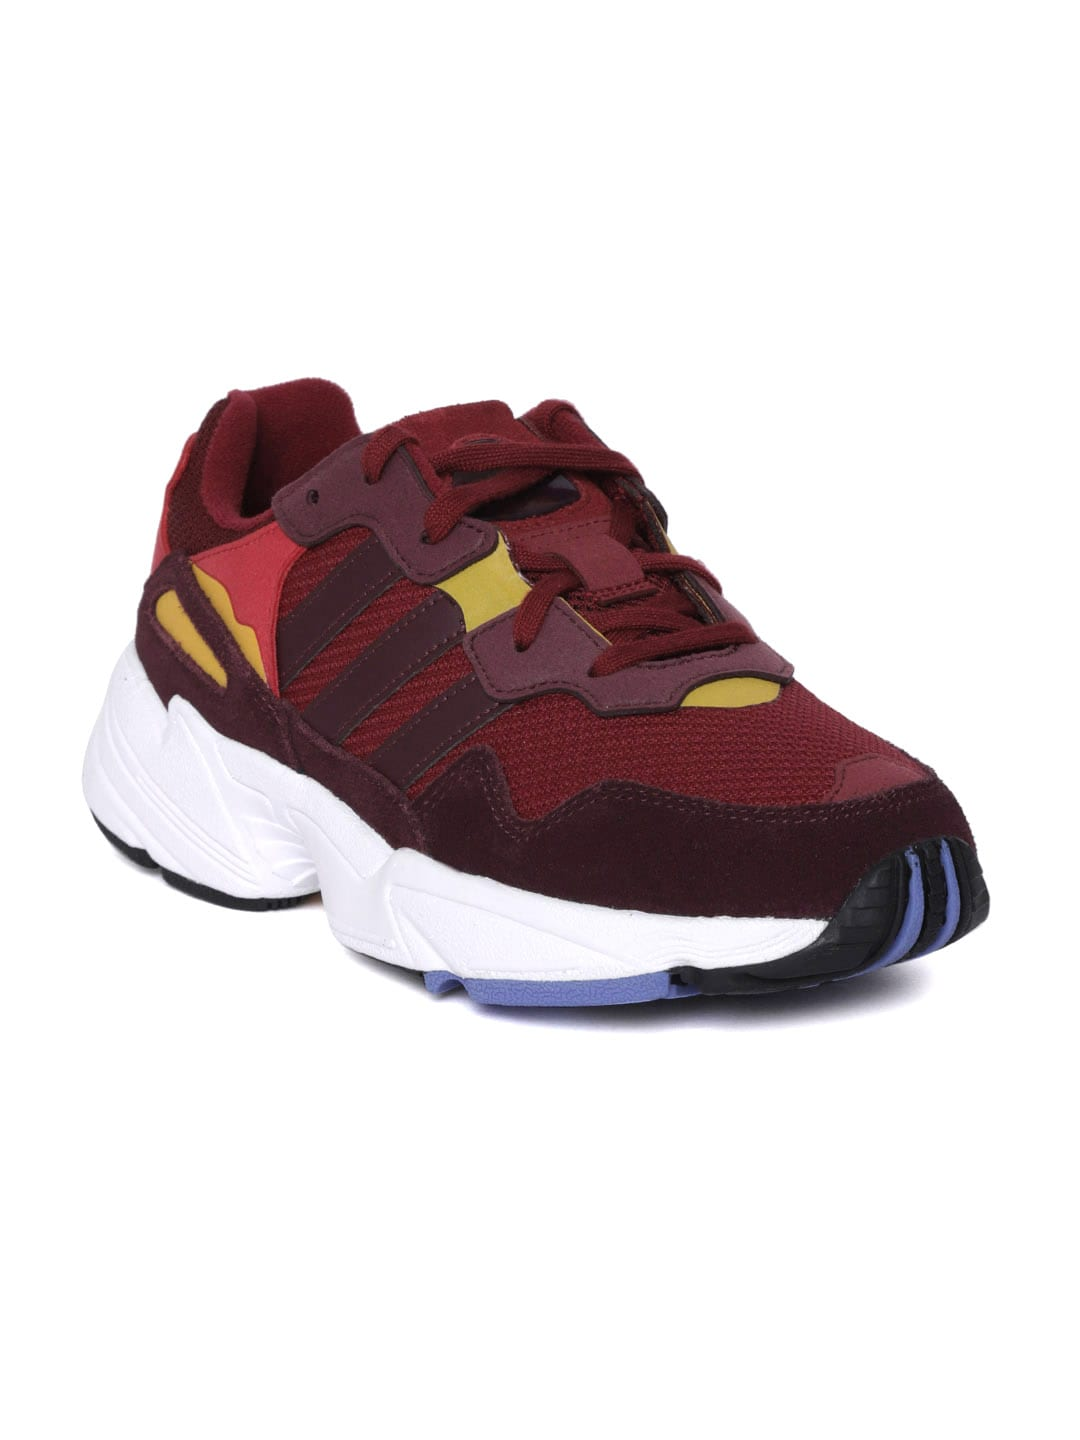 Adidas Buy Women Online Myntra For Shoes Menamp; dCBoex